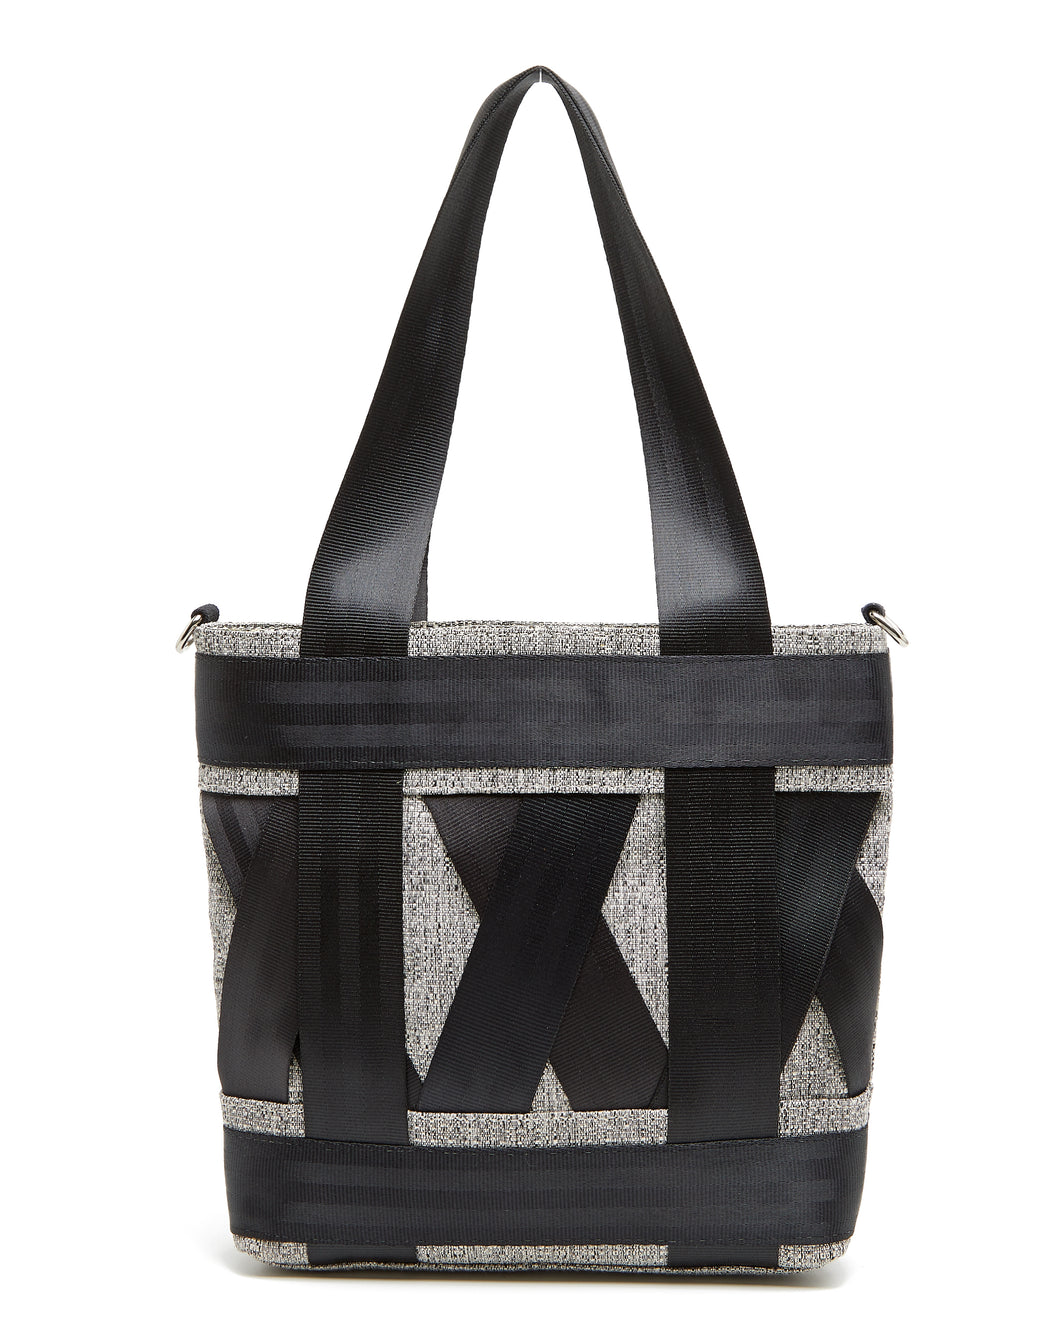 Mini Black and White Leka Tote Bag